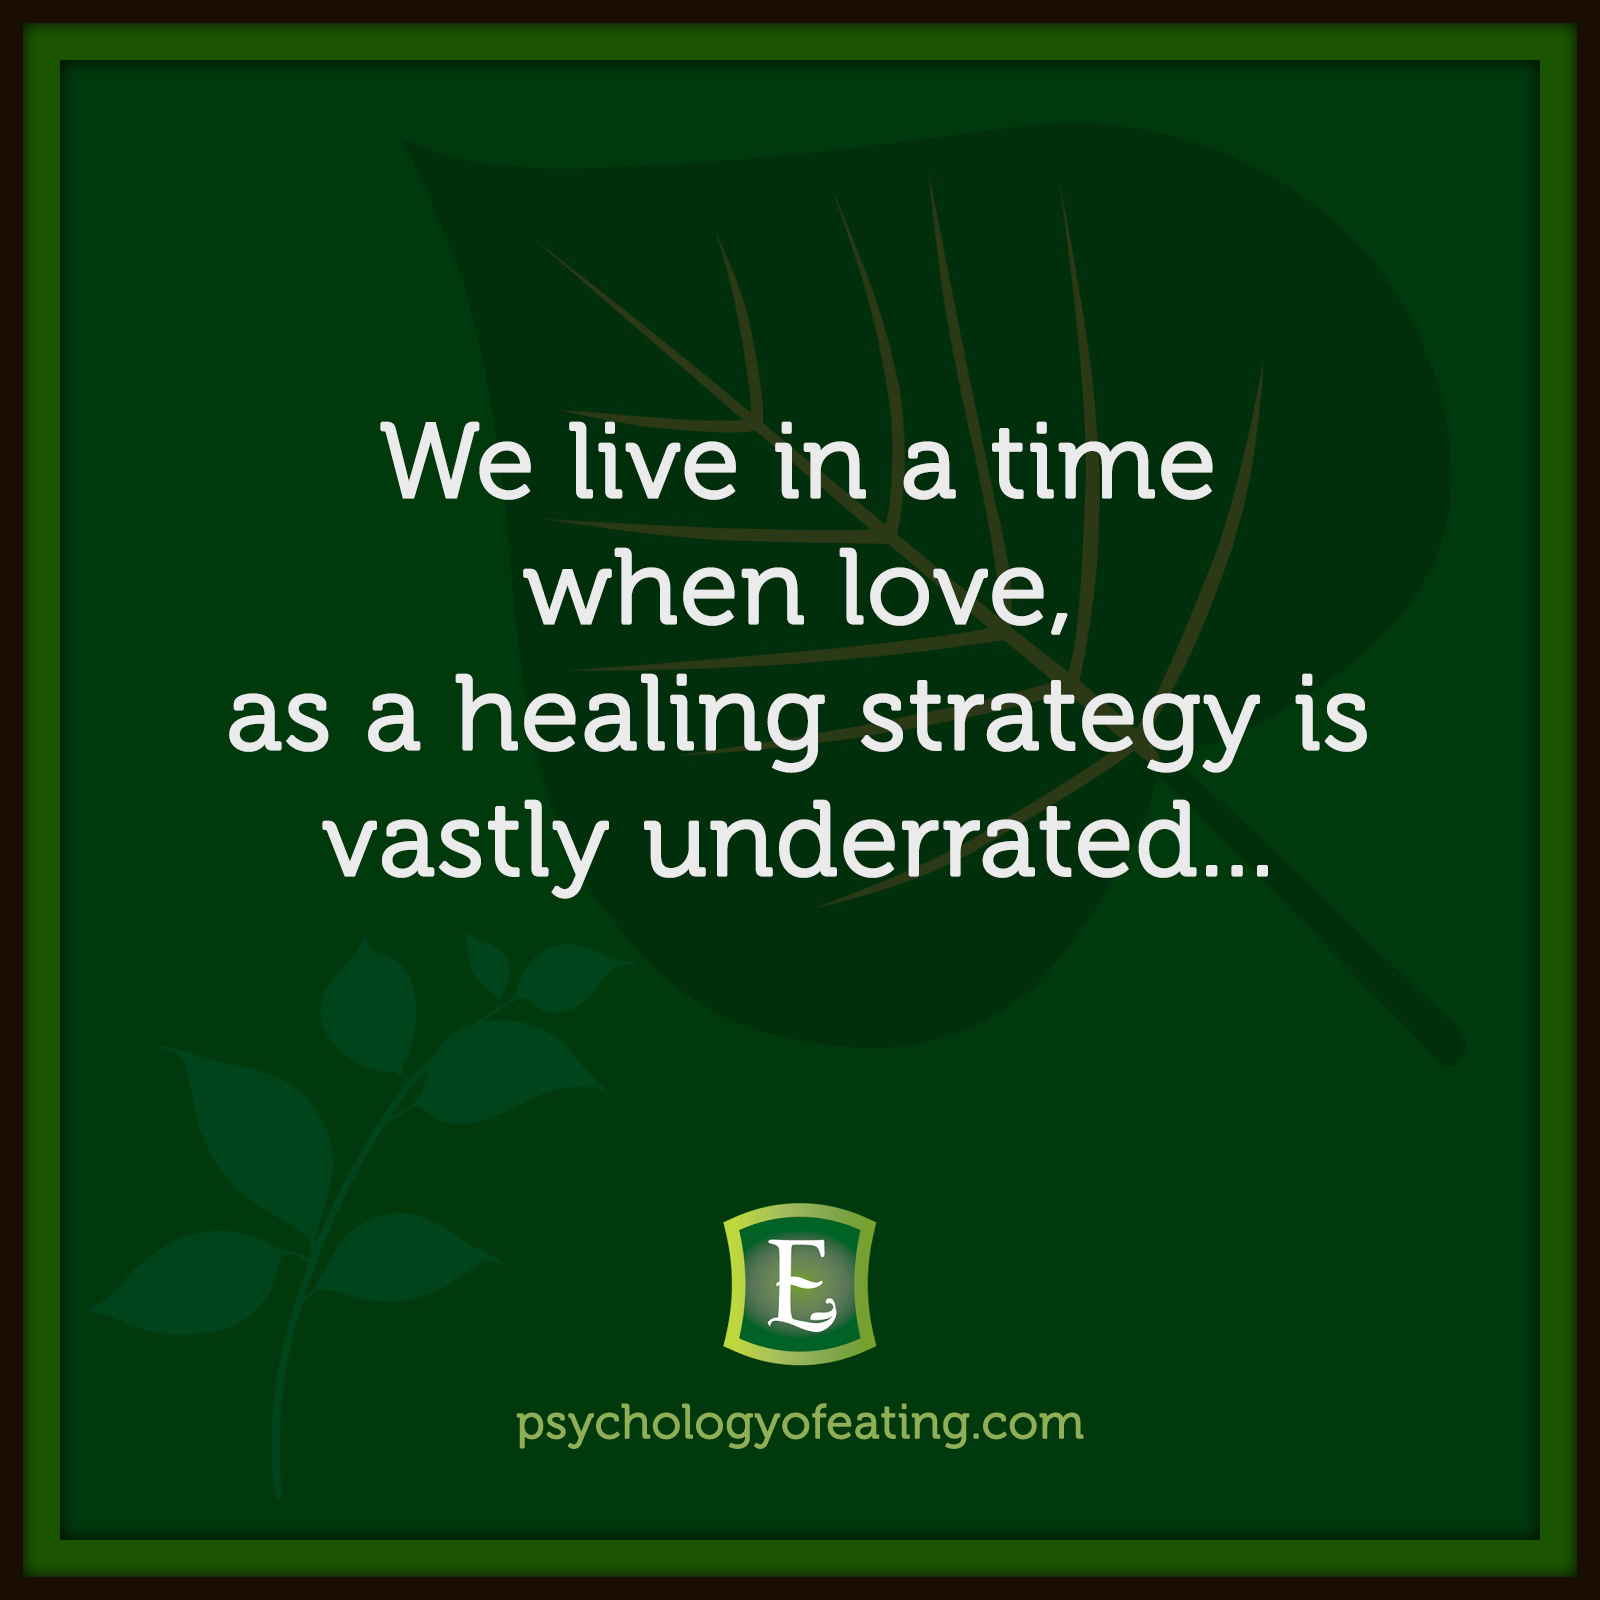 We live in a time when love, as a healing strategy is vastly underrated...  Marc David #health #nutrition #eatingpsychology #IPE